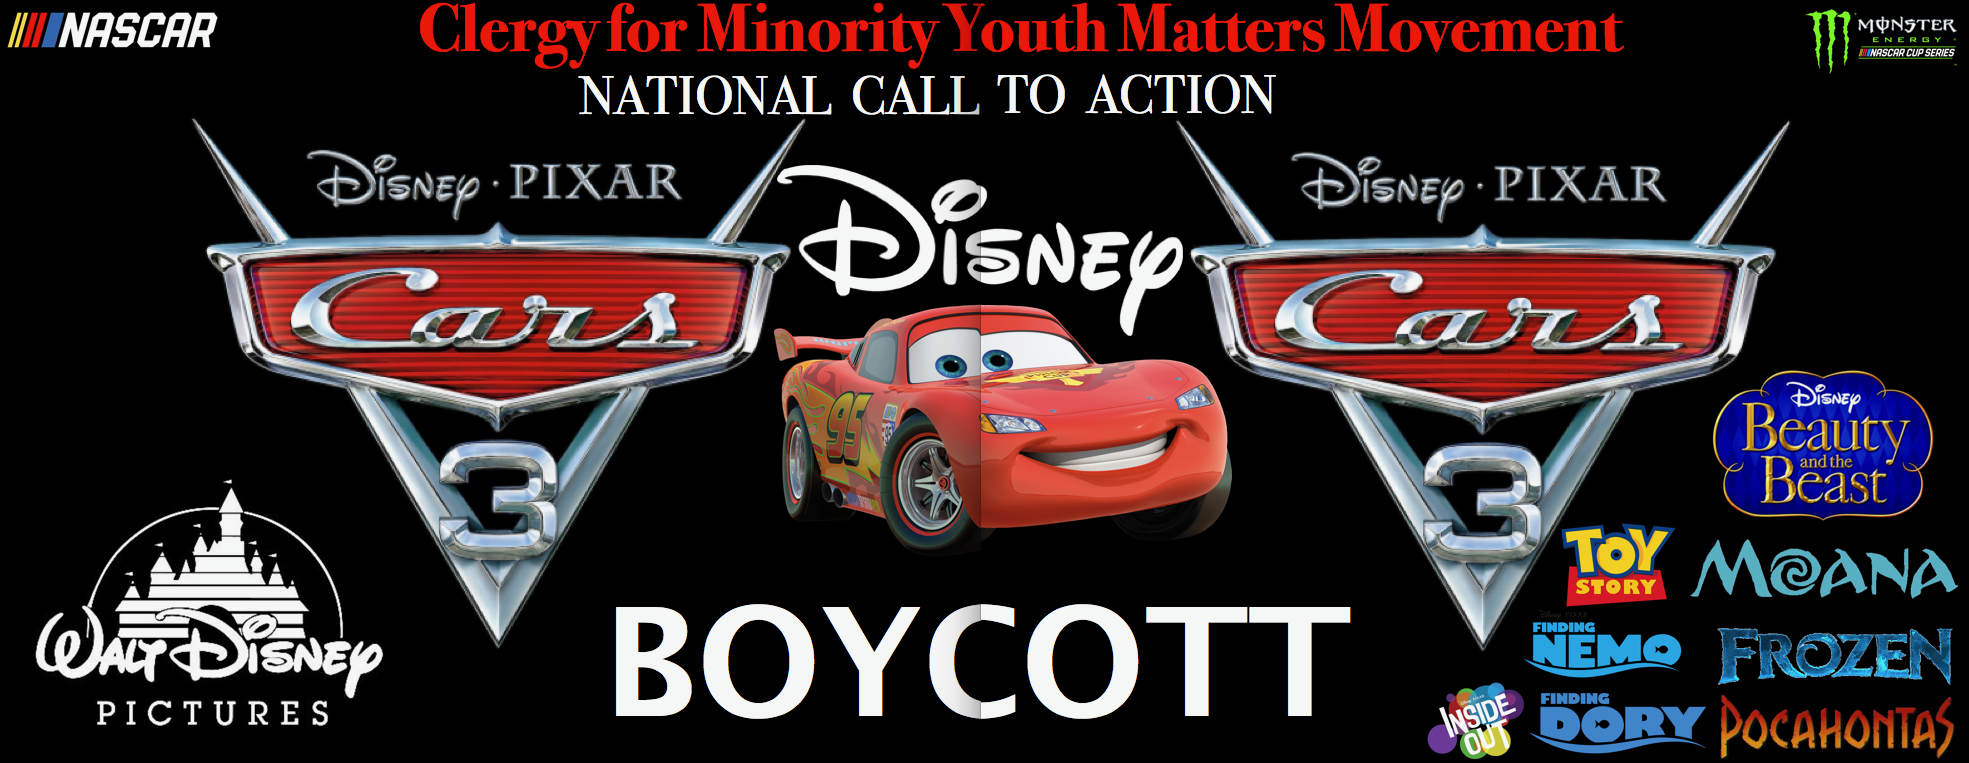 Clergy for Minority Youth Matters Movement Announce Walt Disney World Co. and Pixar Animation Boycott by City Buzz Local in Los Angeles NY